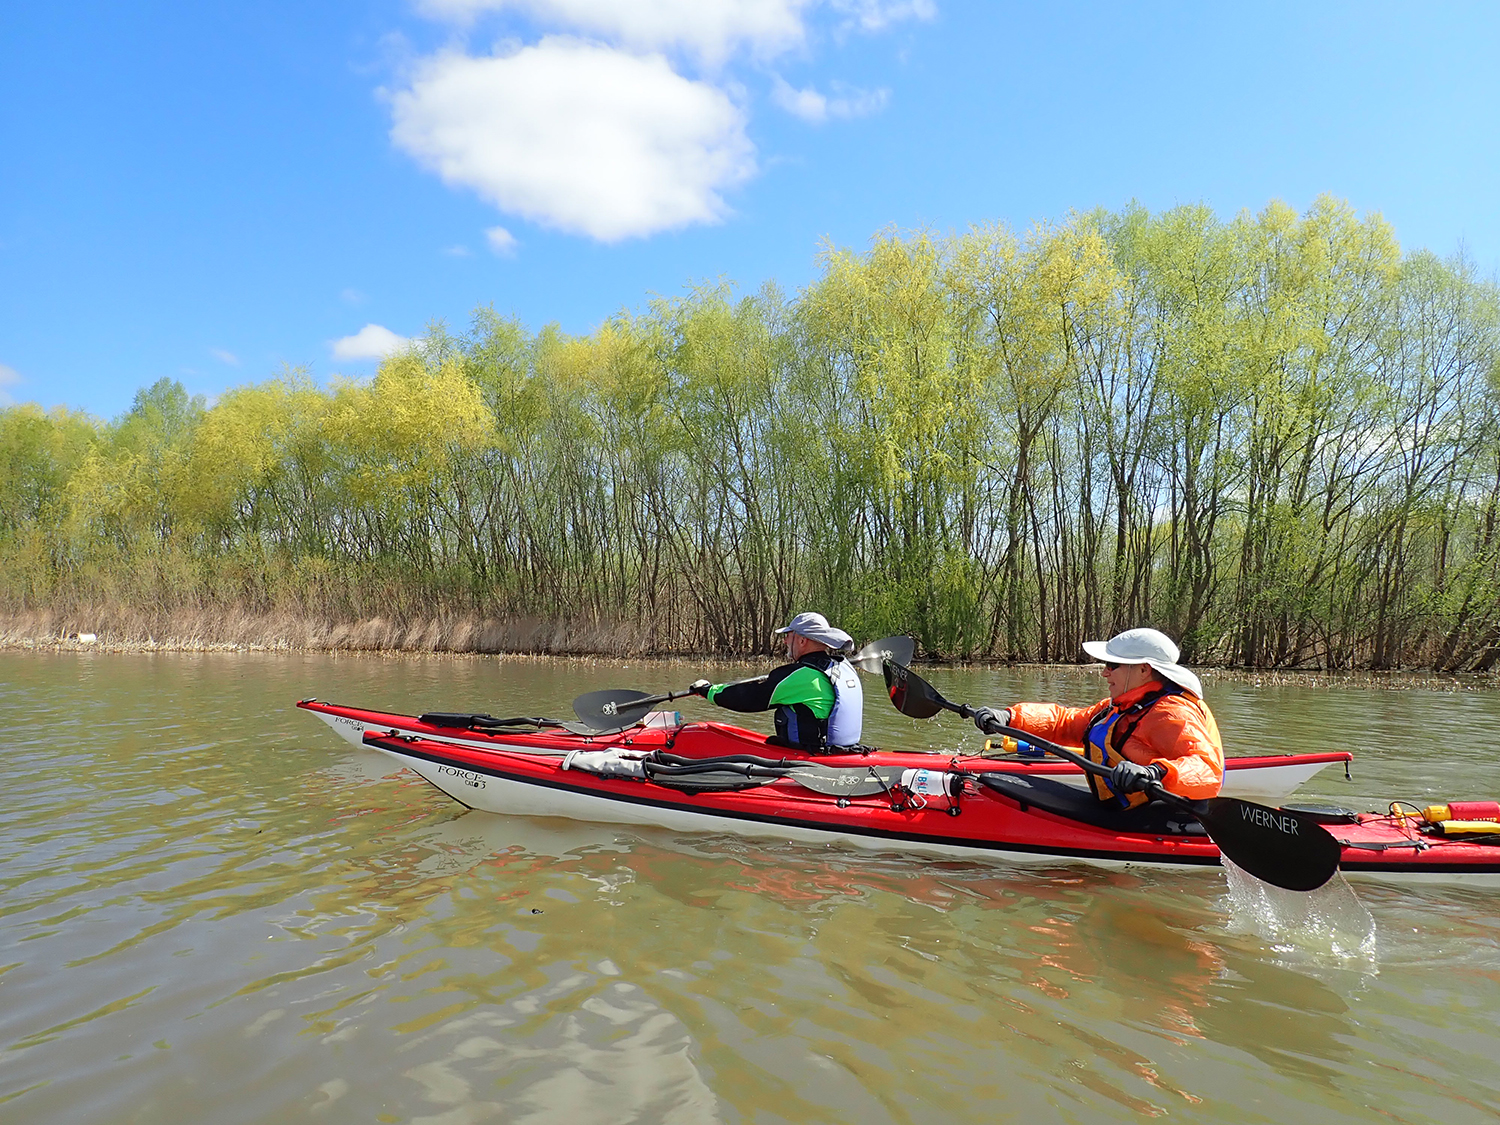 Headed upstream on the Mohawk, enjoying the spring colors.  Alan Mapes